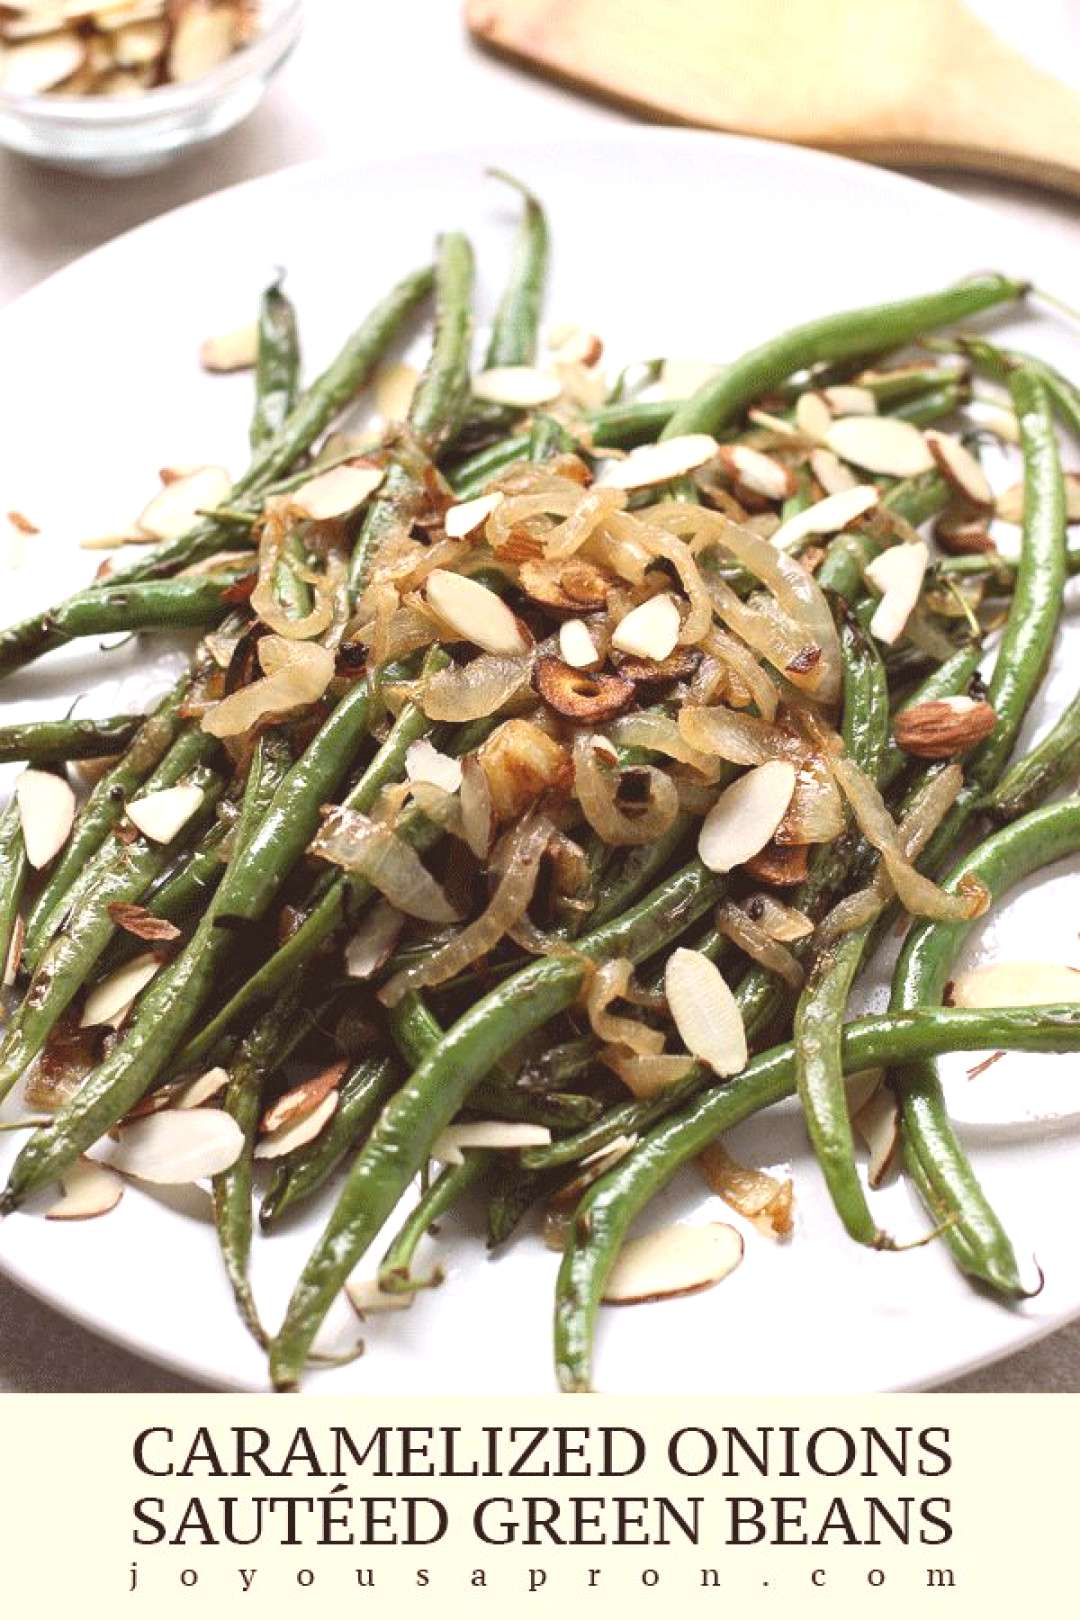 Caramelized Onions Sautéed Green Beans Caramelized Onions Sautéed Green Beans - Yummy, healthy an